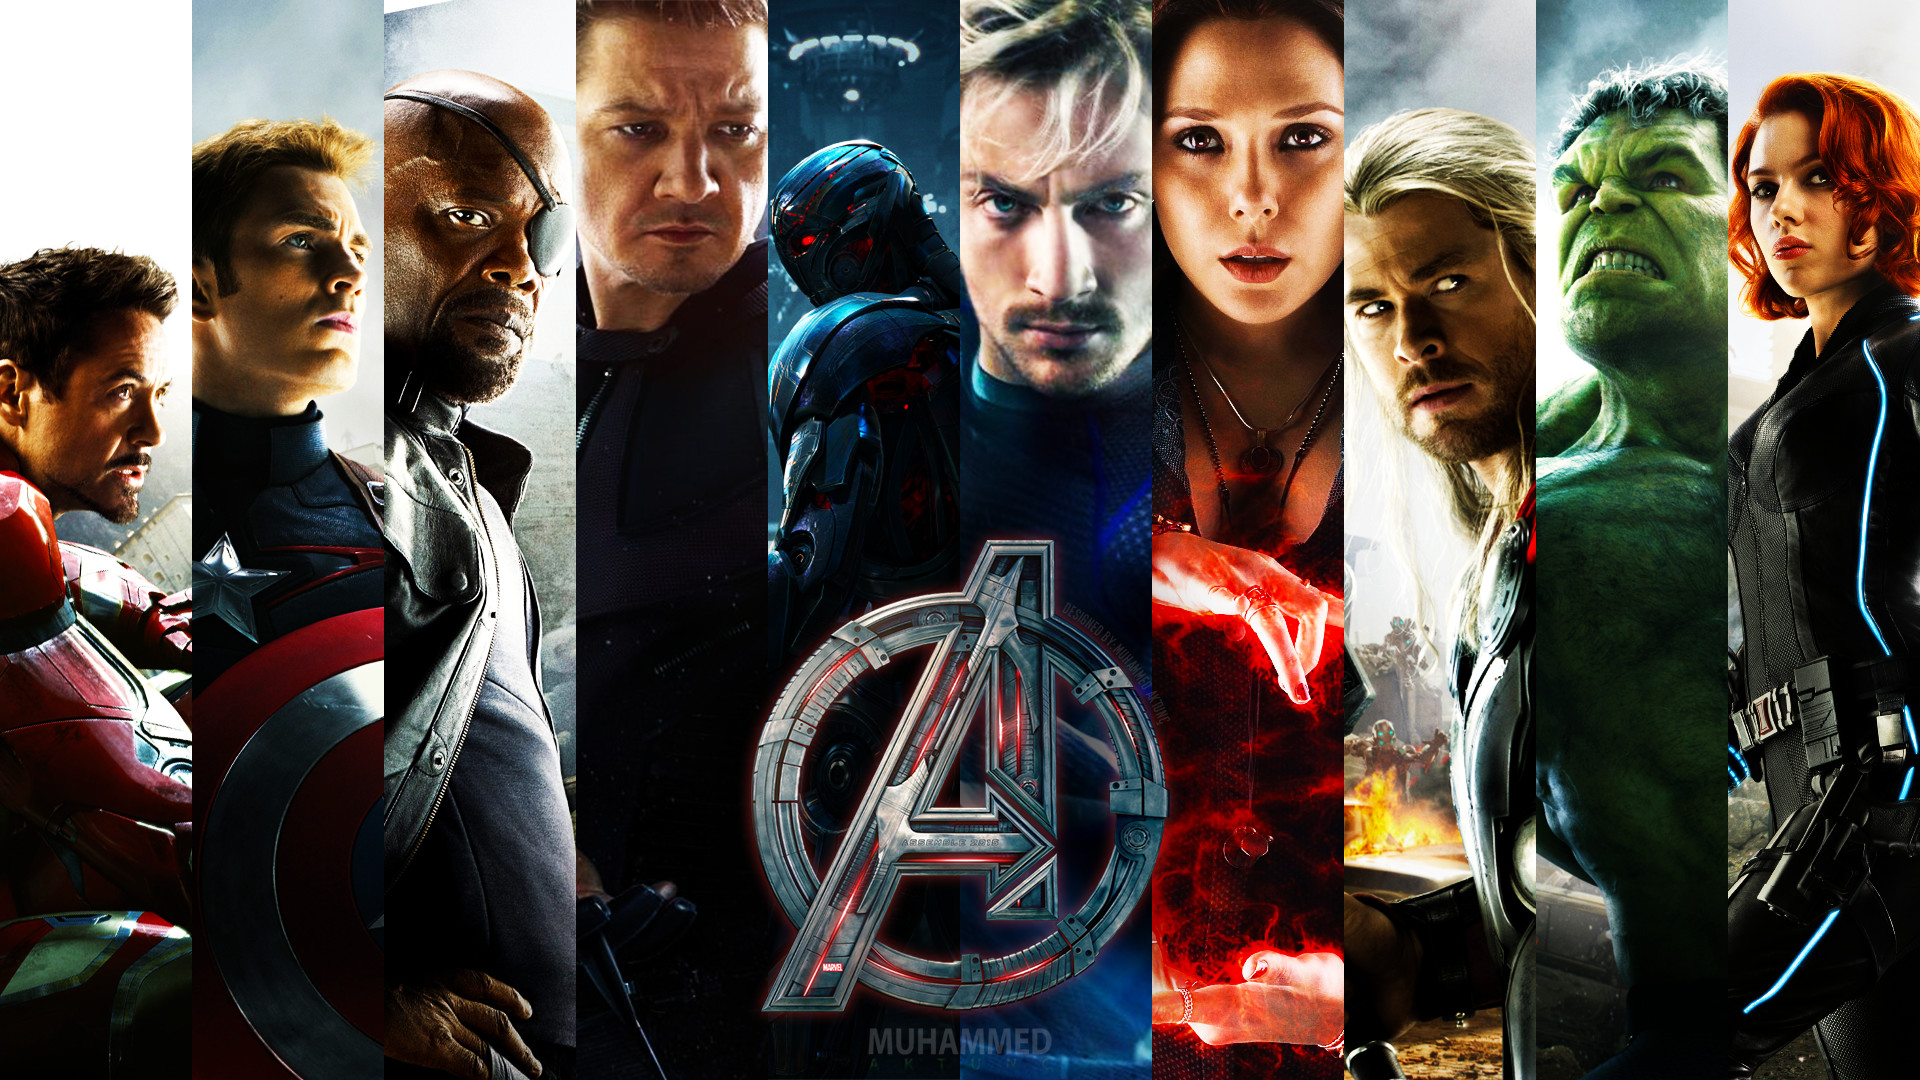 Download Wallpaper Avengers age of ultron, Marvel … | Download  Wallpaper | Pinterest | Avengers wallpaper, Wallpaper and Wallpaper  downloads